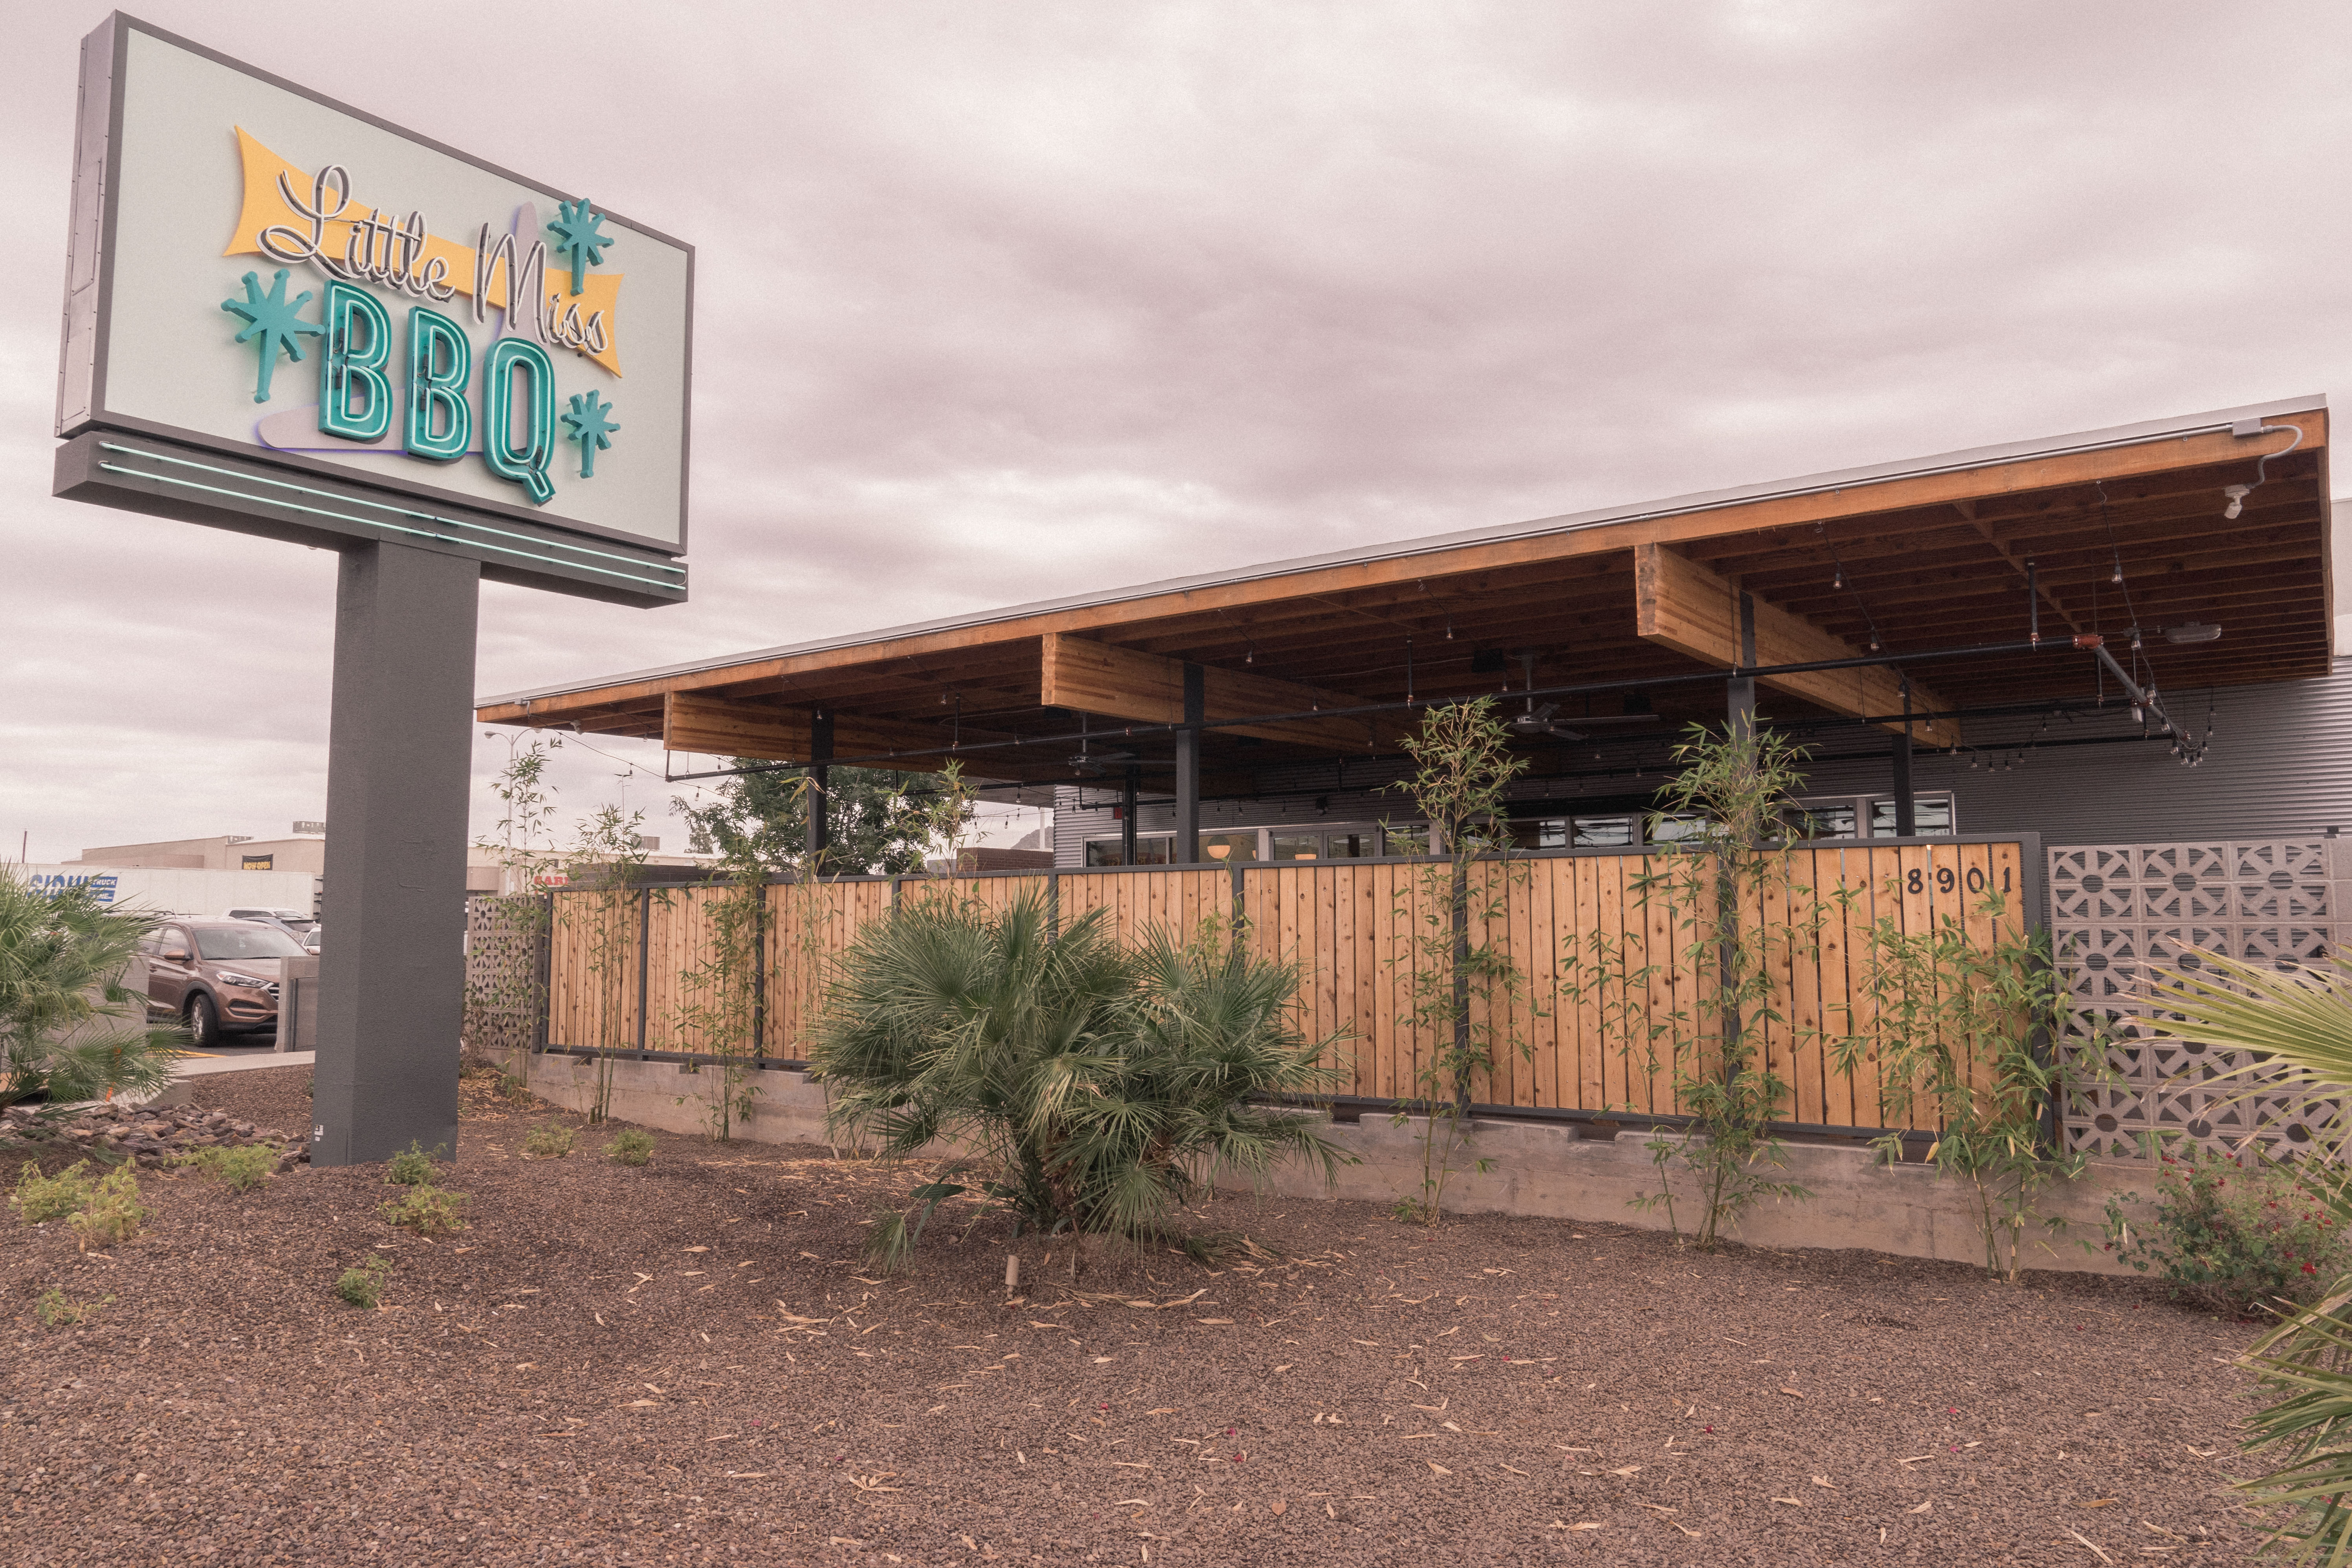 Map Of Unit 23 Arizona.The 11 Best New Restaurants In Phoenix Arizona Eater